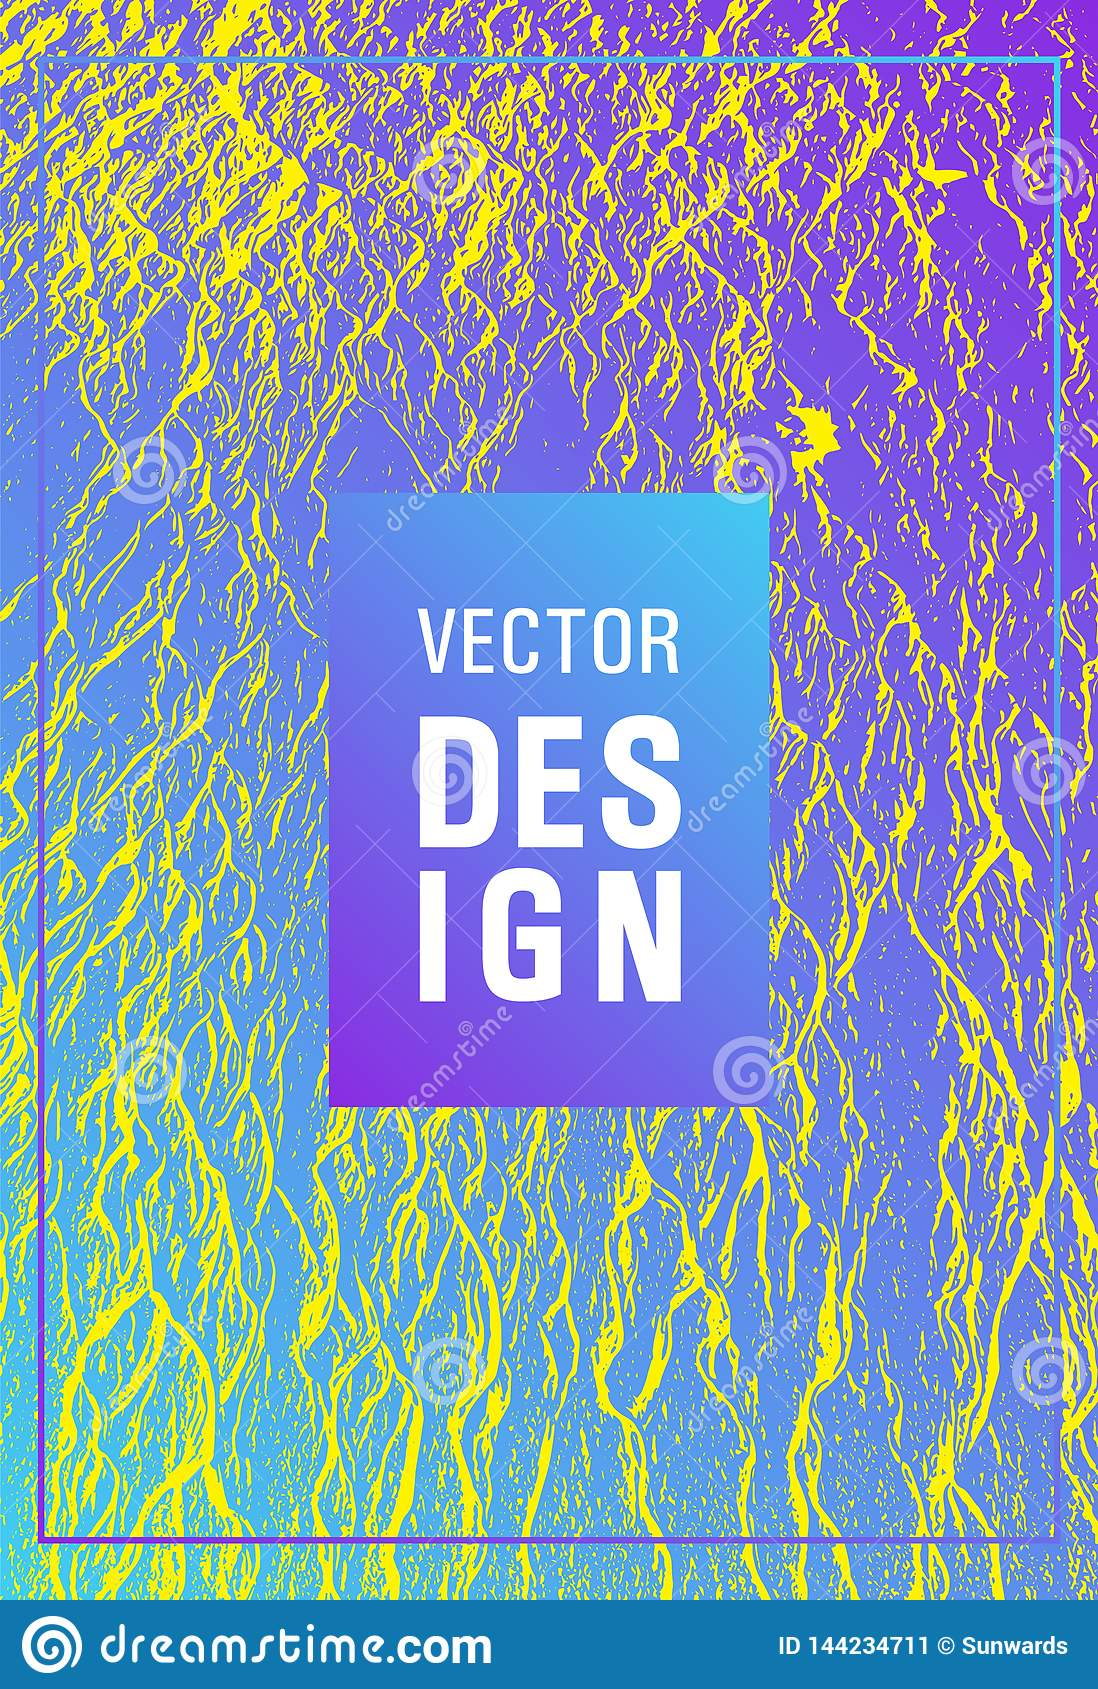 Catalog cover vector template.